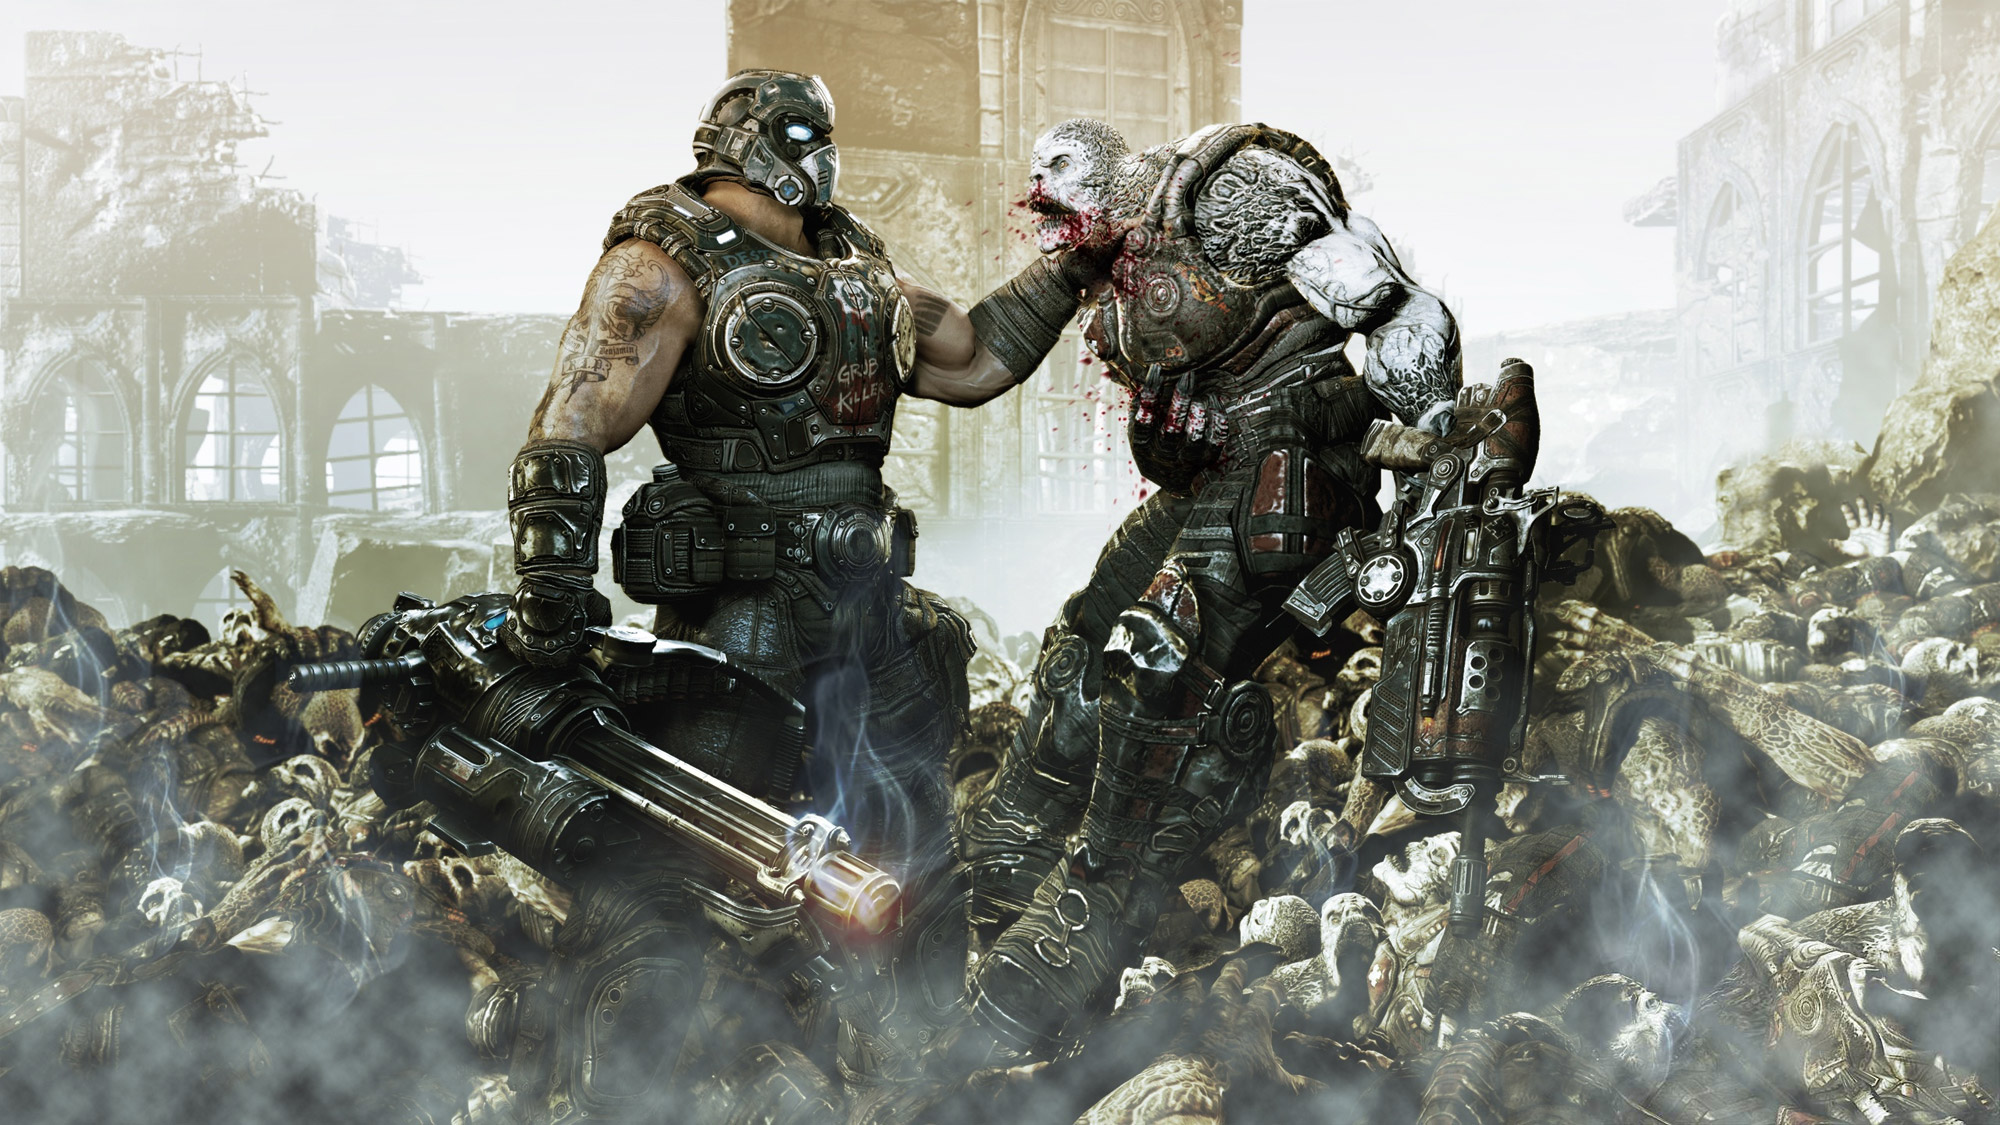 gears of war A4